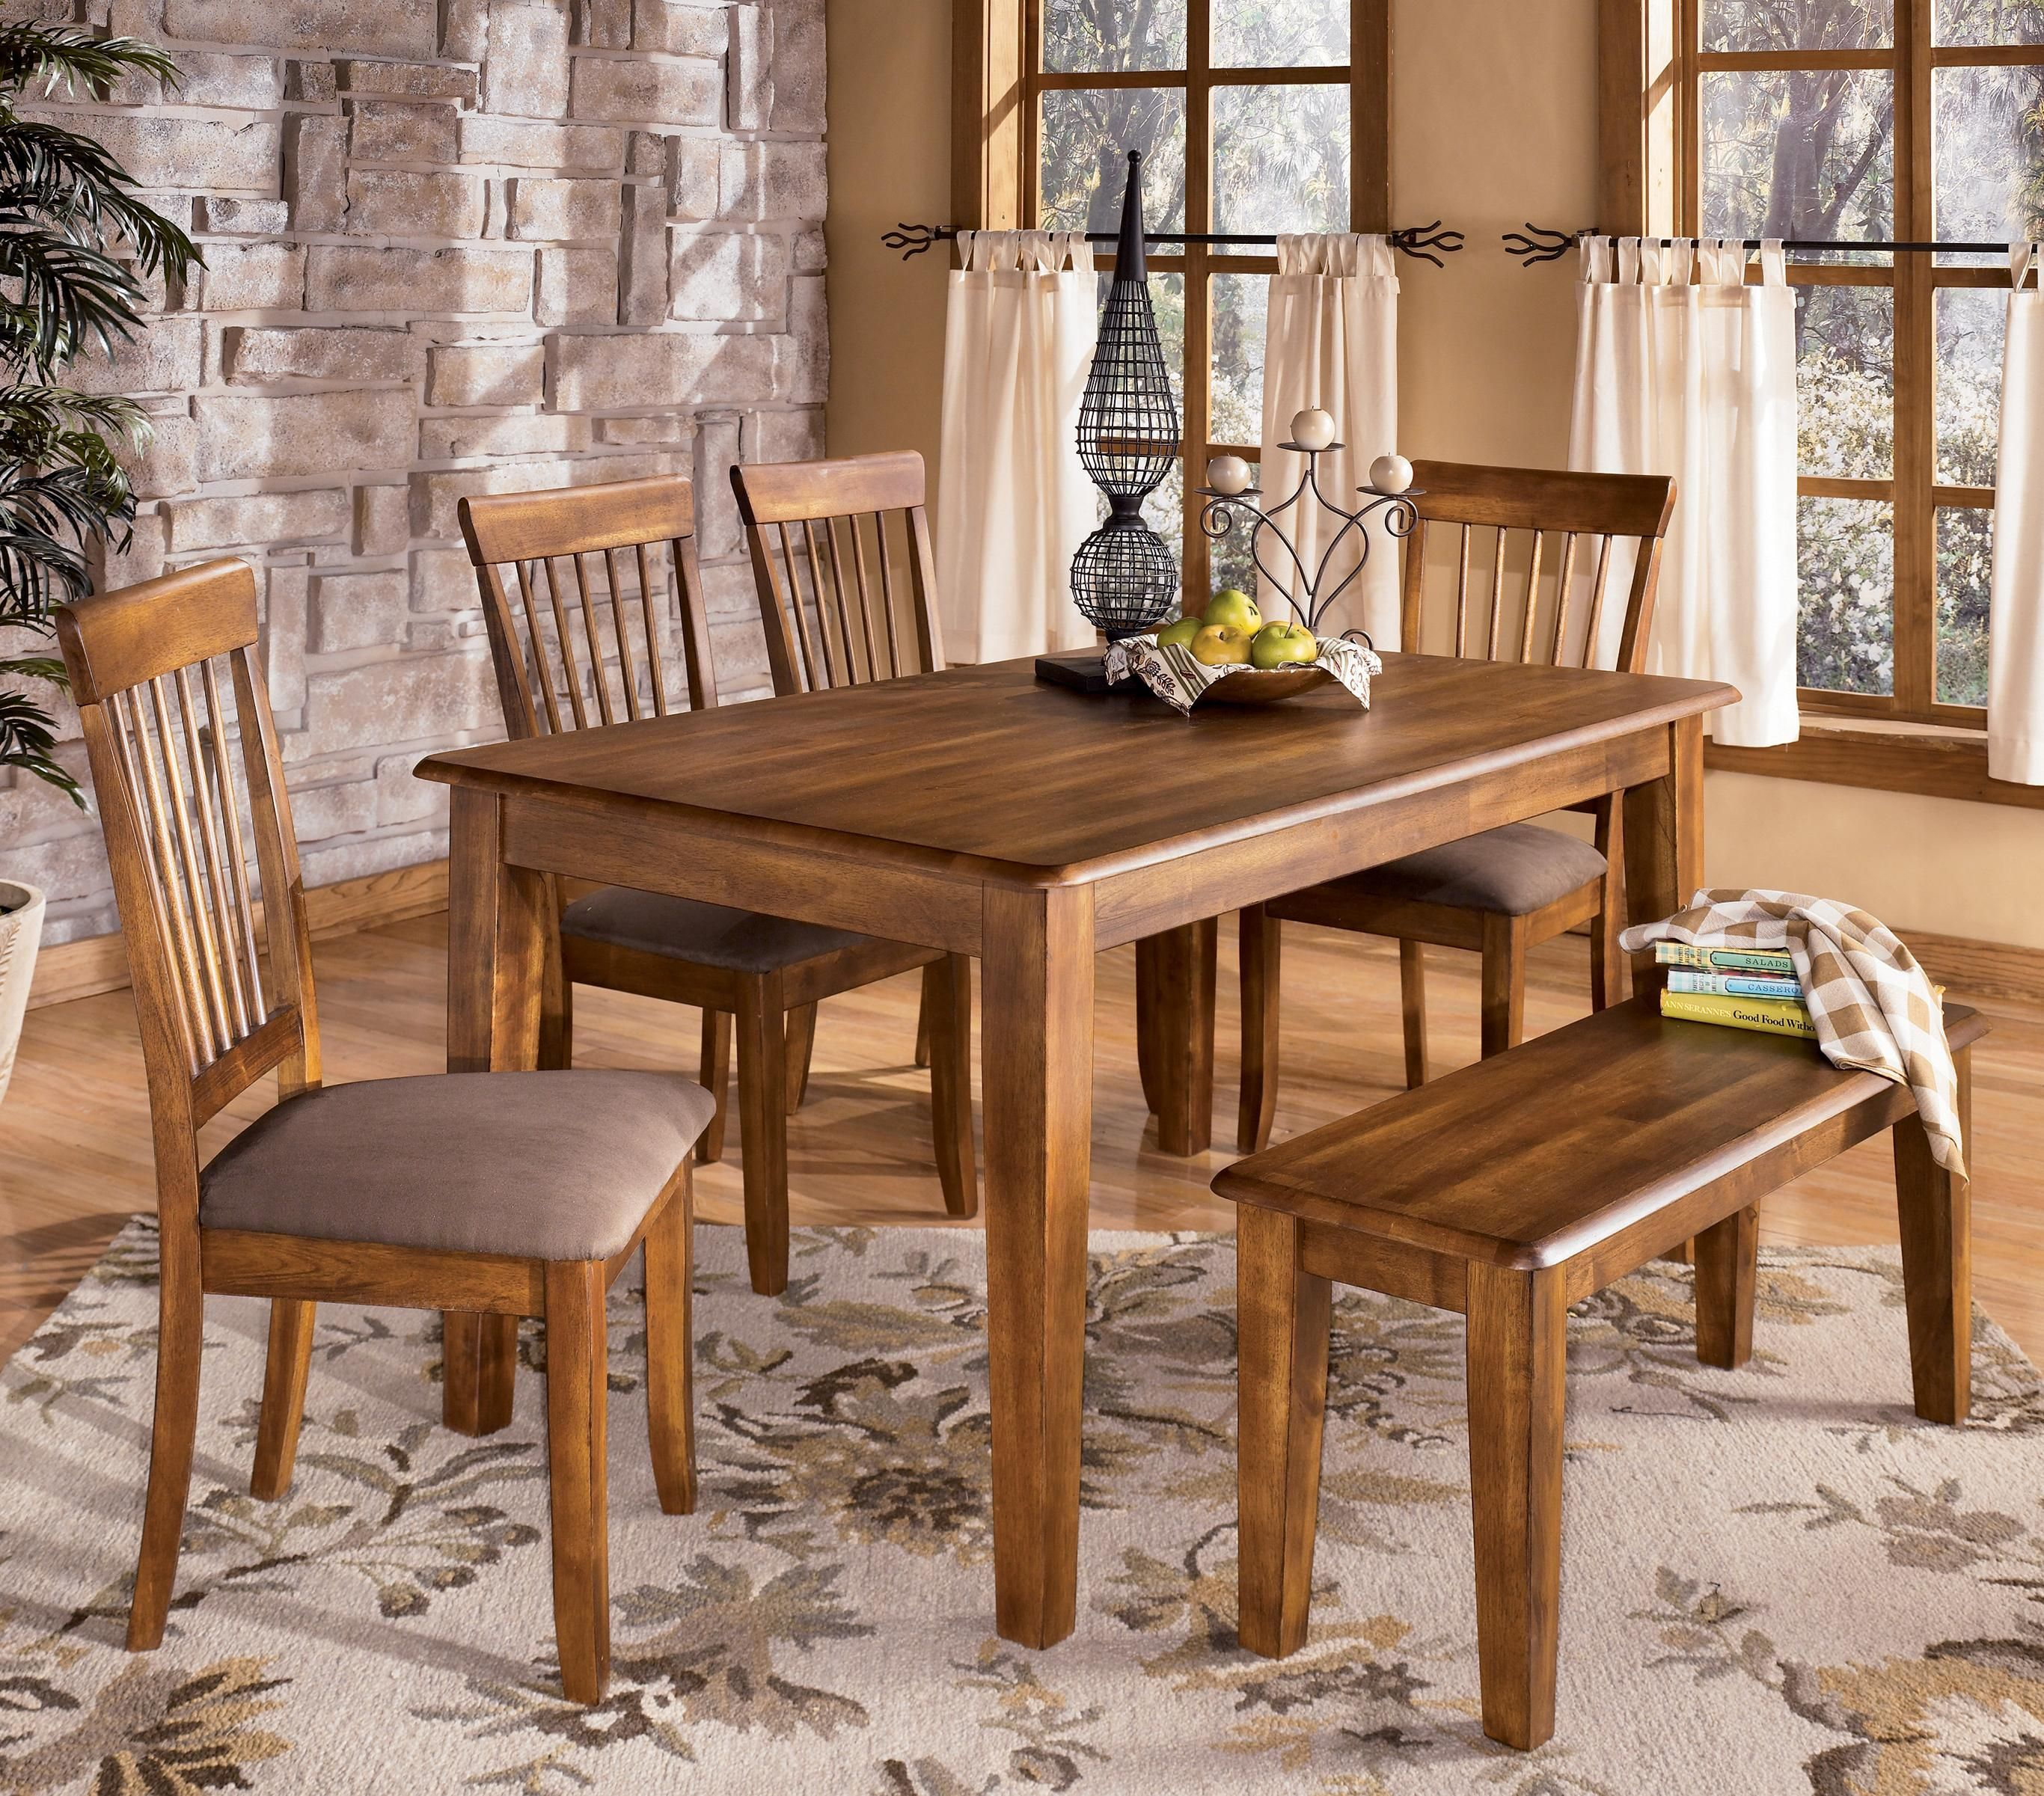 Berringer 7 x 7 Table with 7 Chairs & Bench by Ashley Furniture